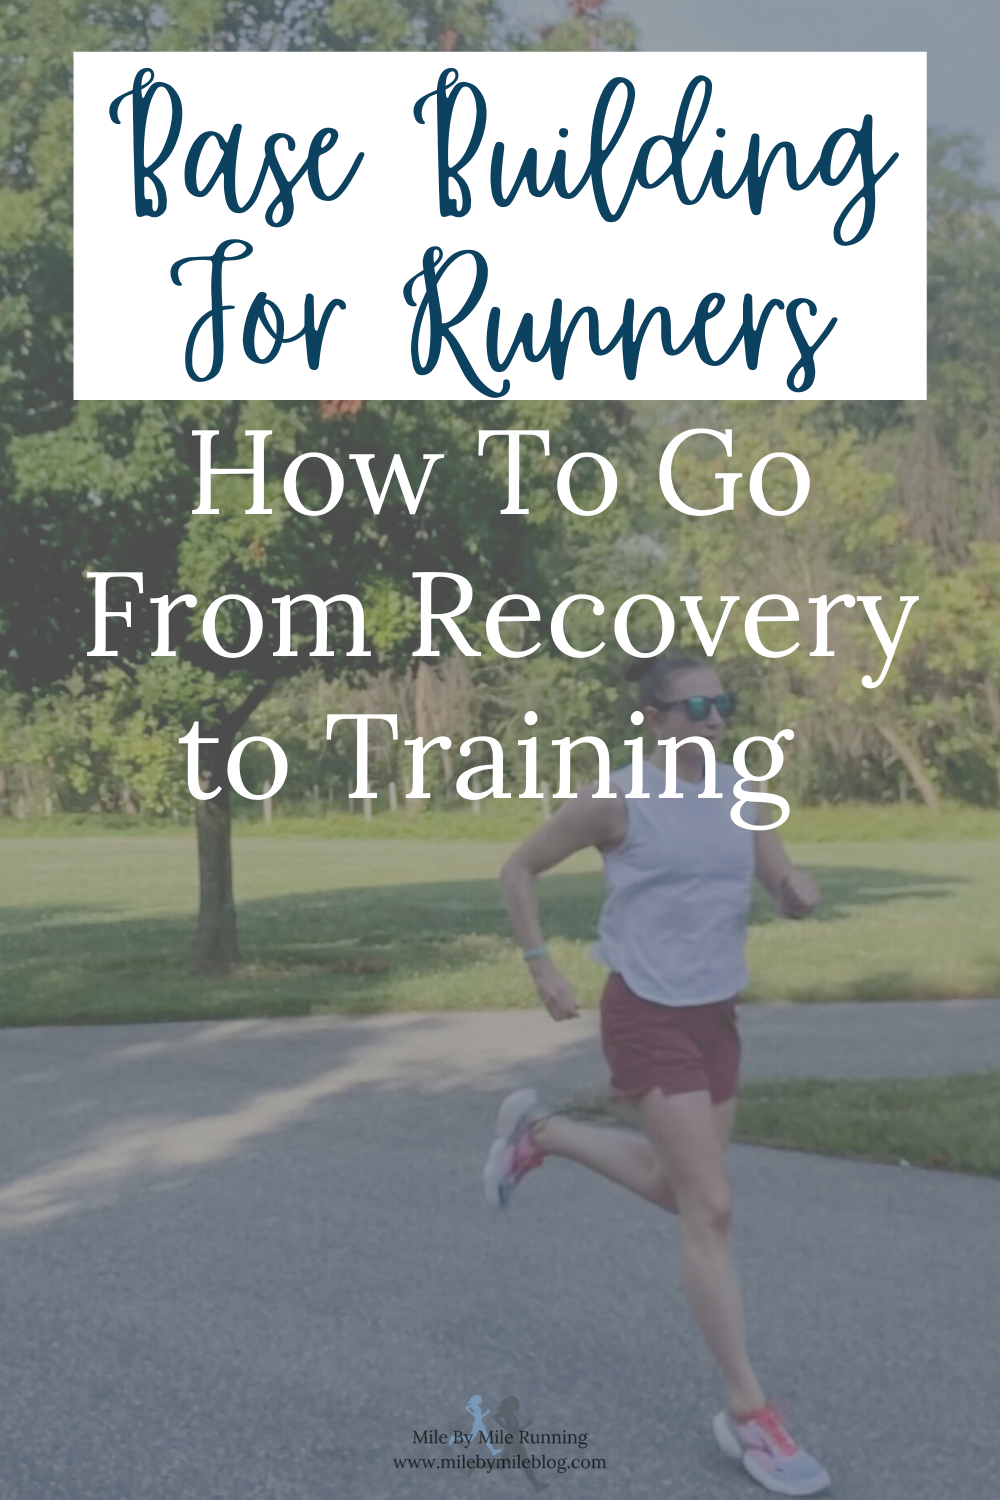 Workouts to safely transition from a recovery period back into training.